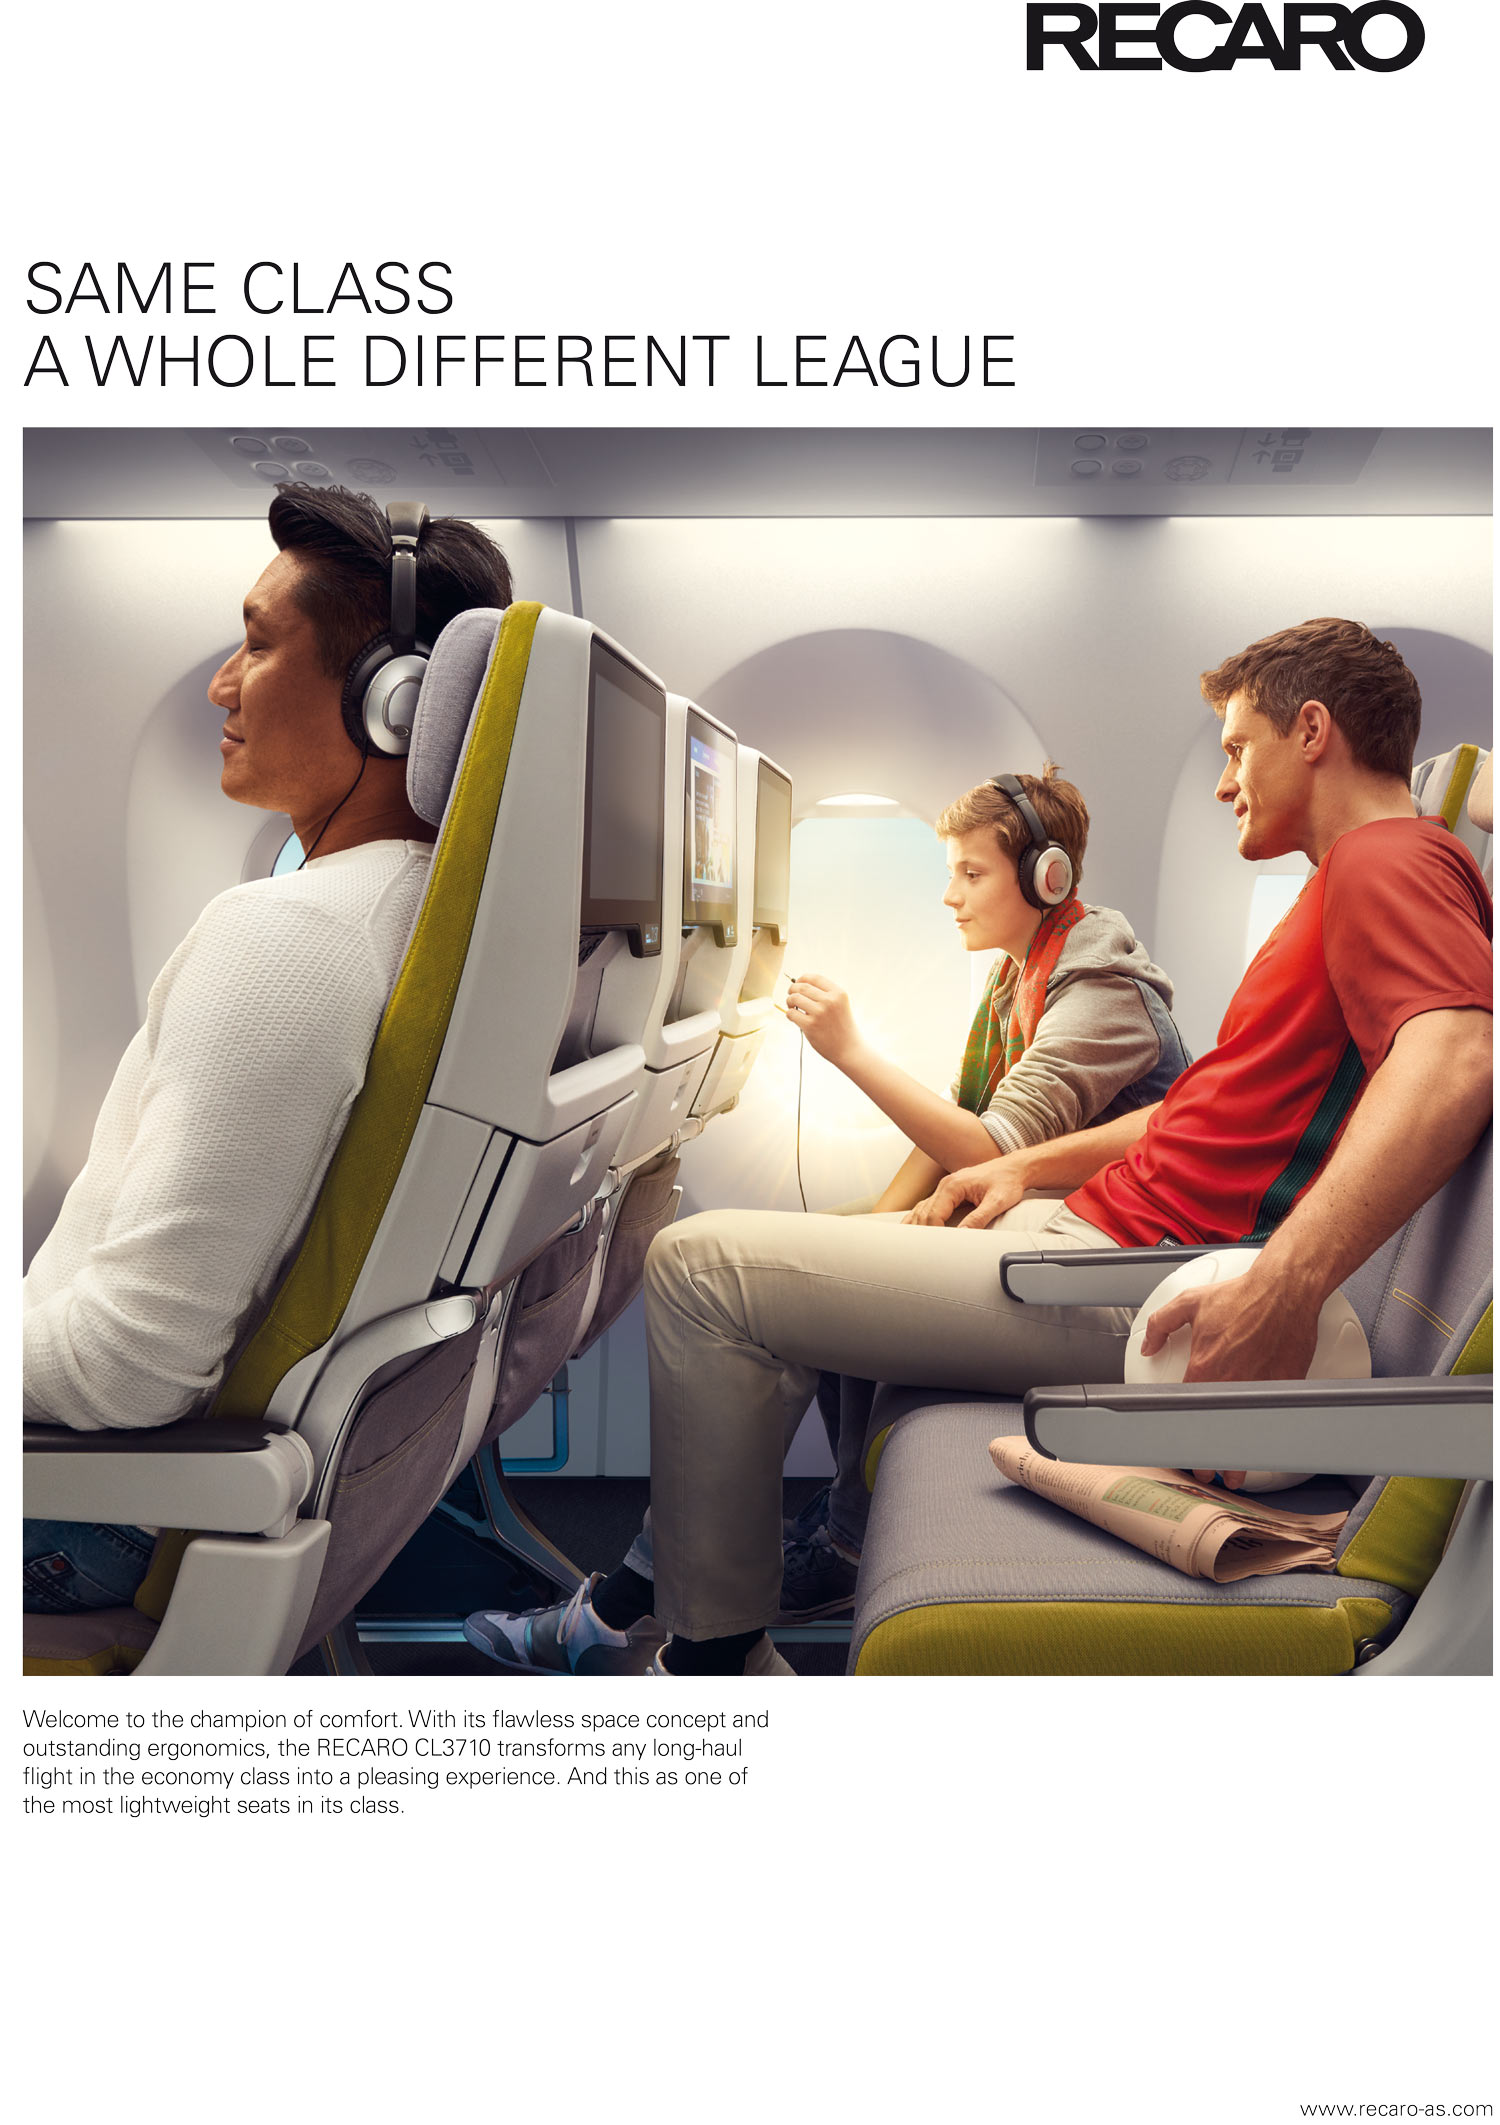 Recaro aircraft seating